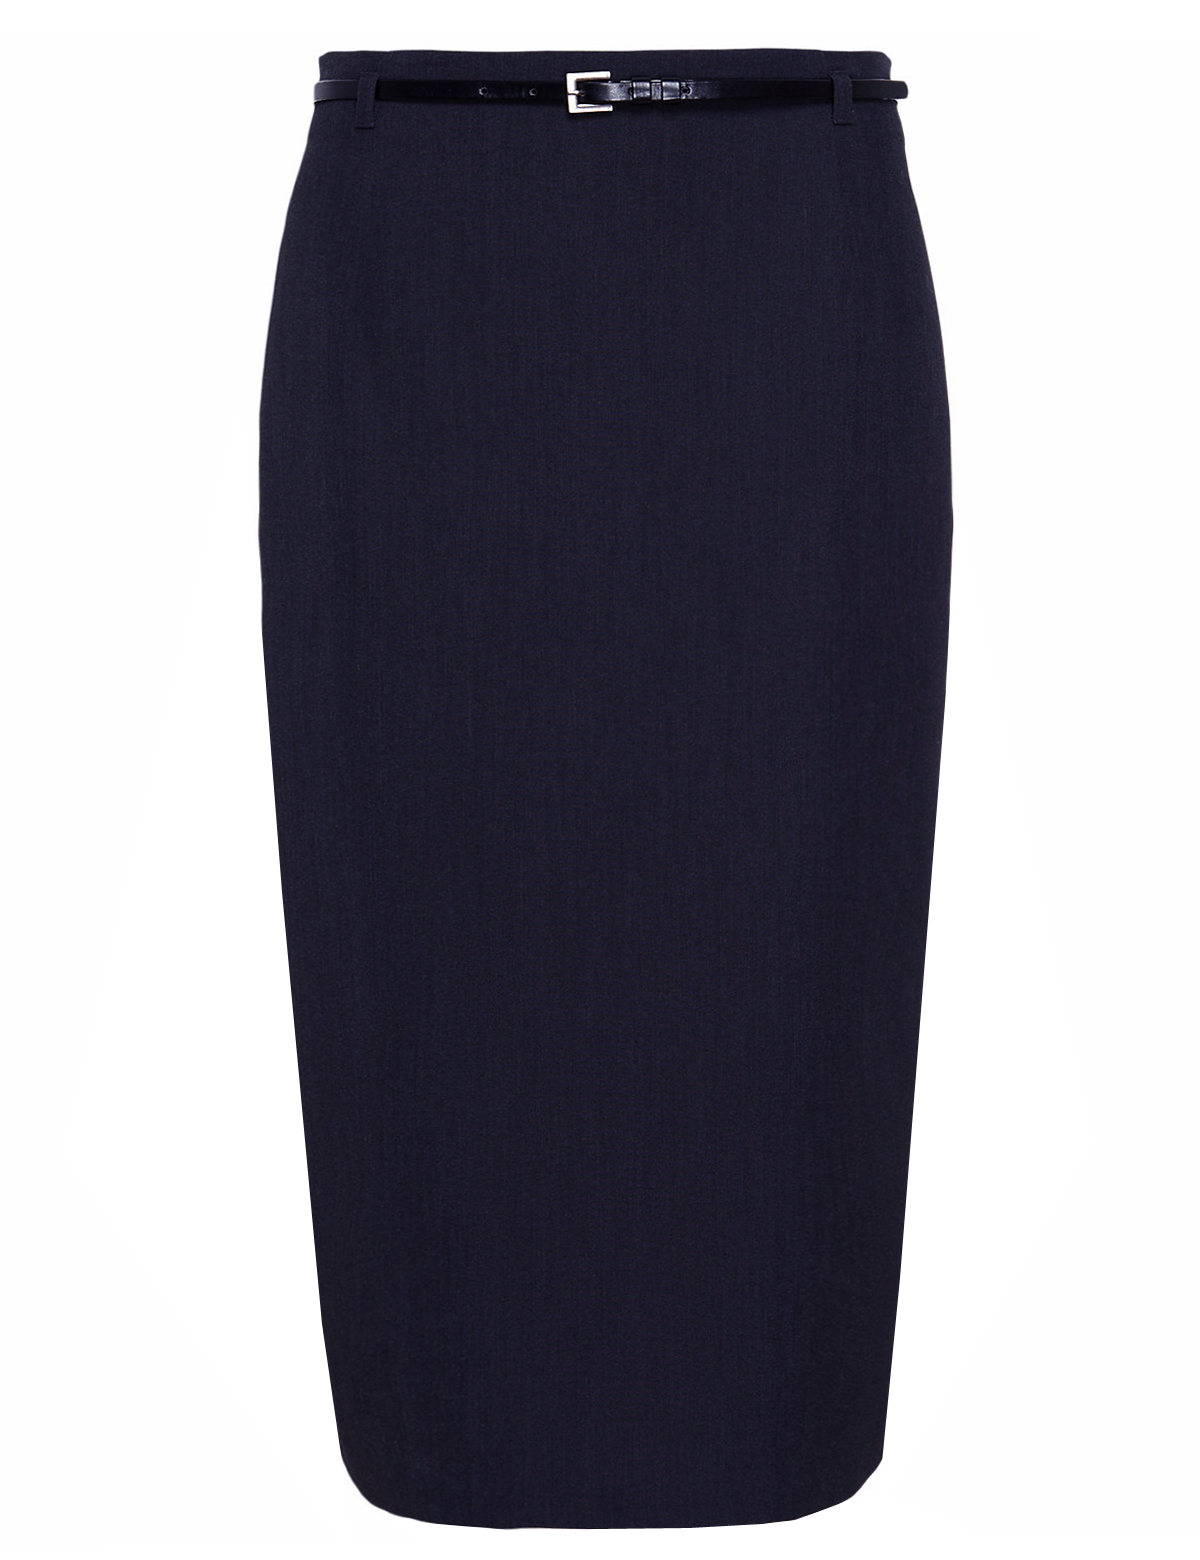 marks and spencer m 5 navy belted pencil skirt size 14